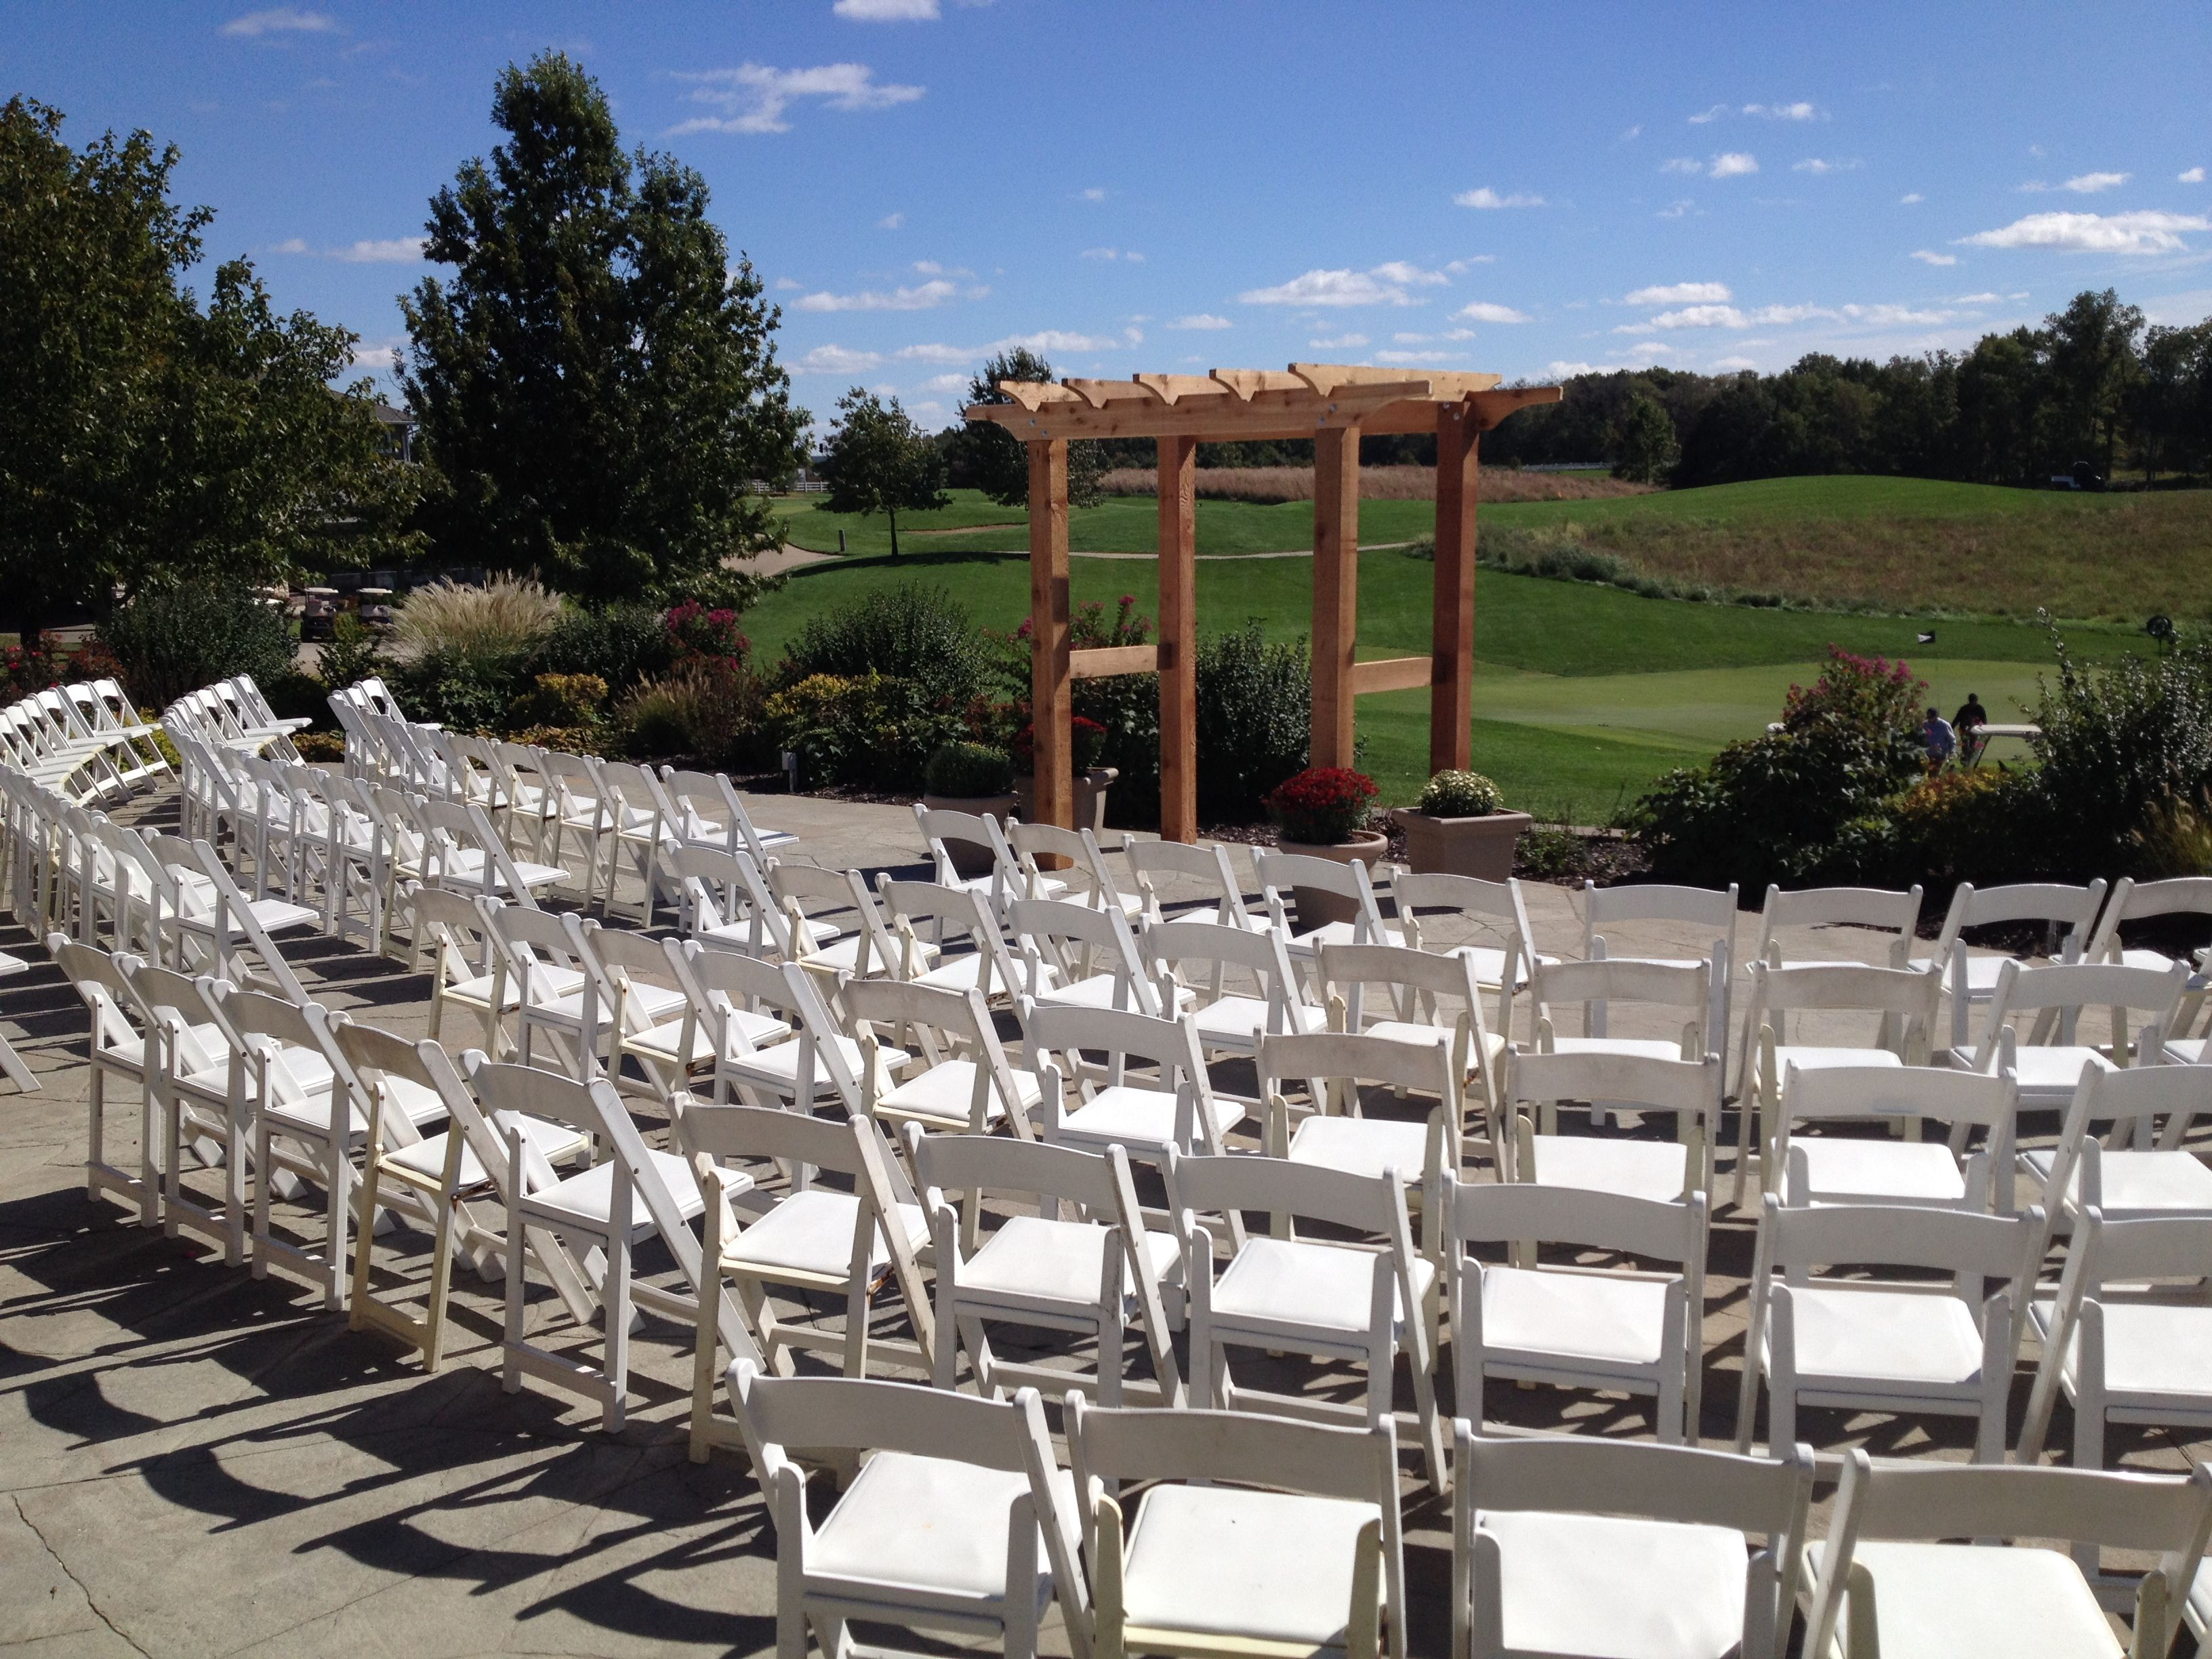 Often Hosted Are Private Golf Events Family Reunions Wedding